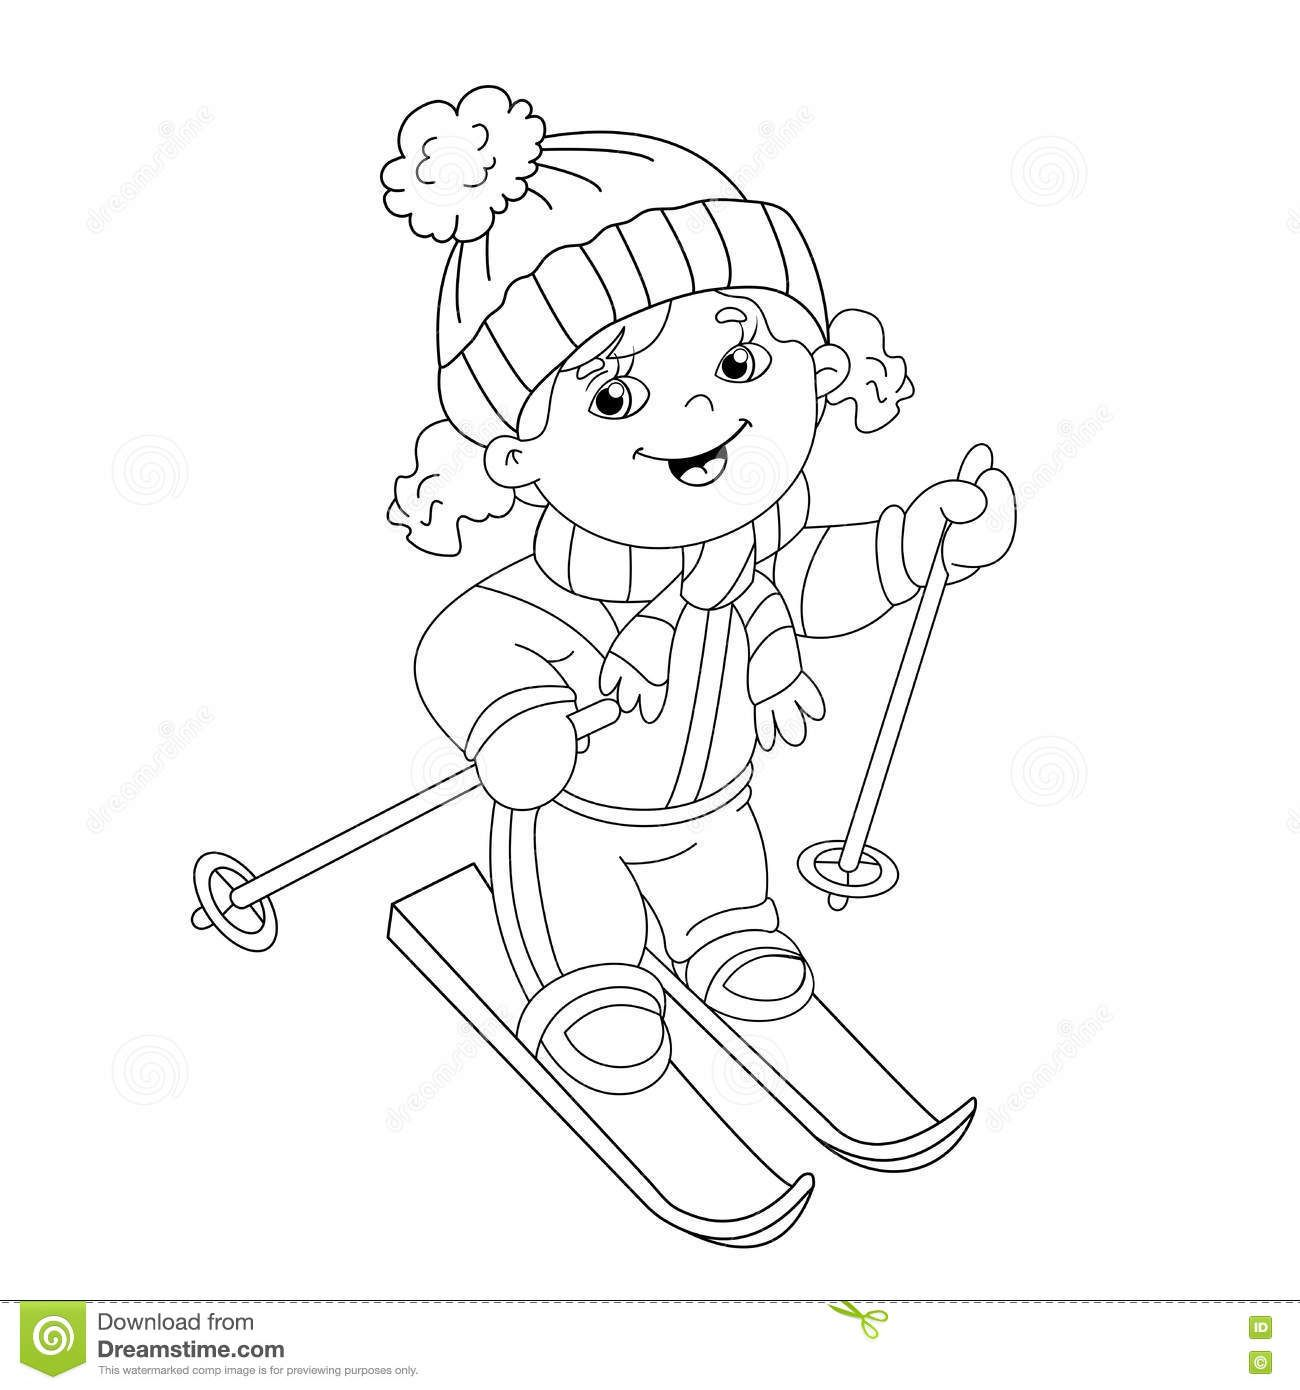 Coloring Page Outline Cartoon Girl Riding Skis Winter